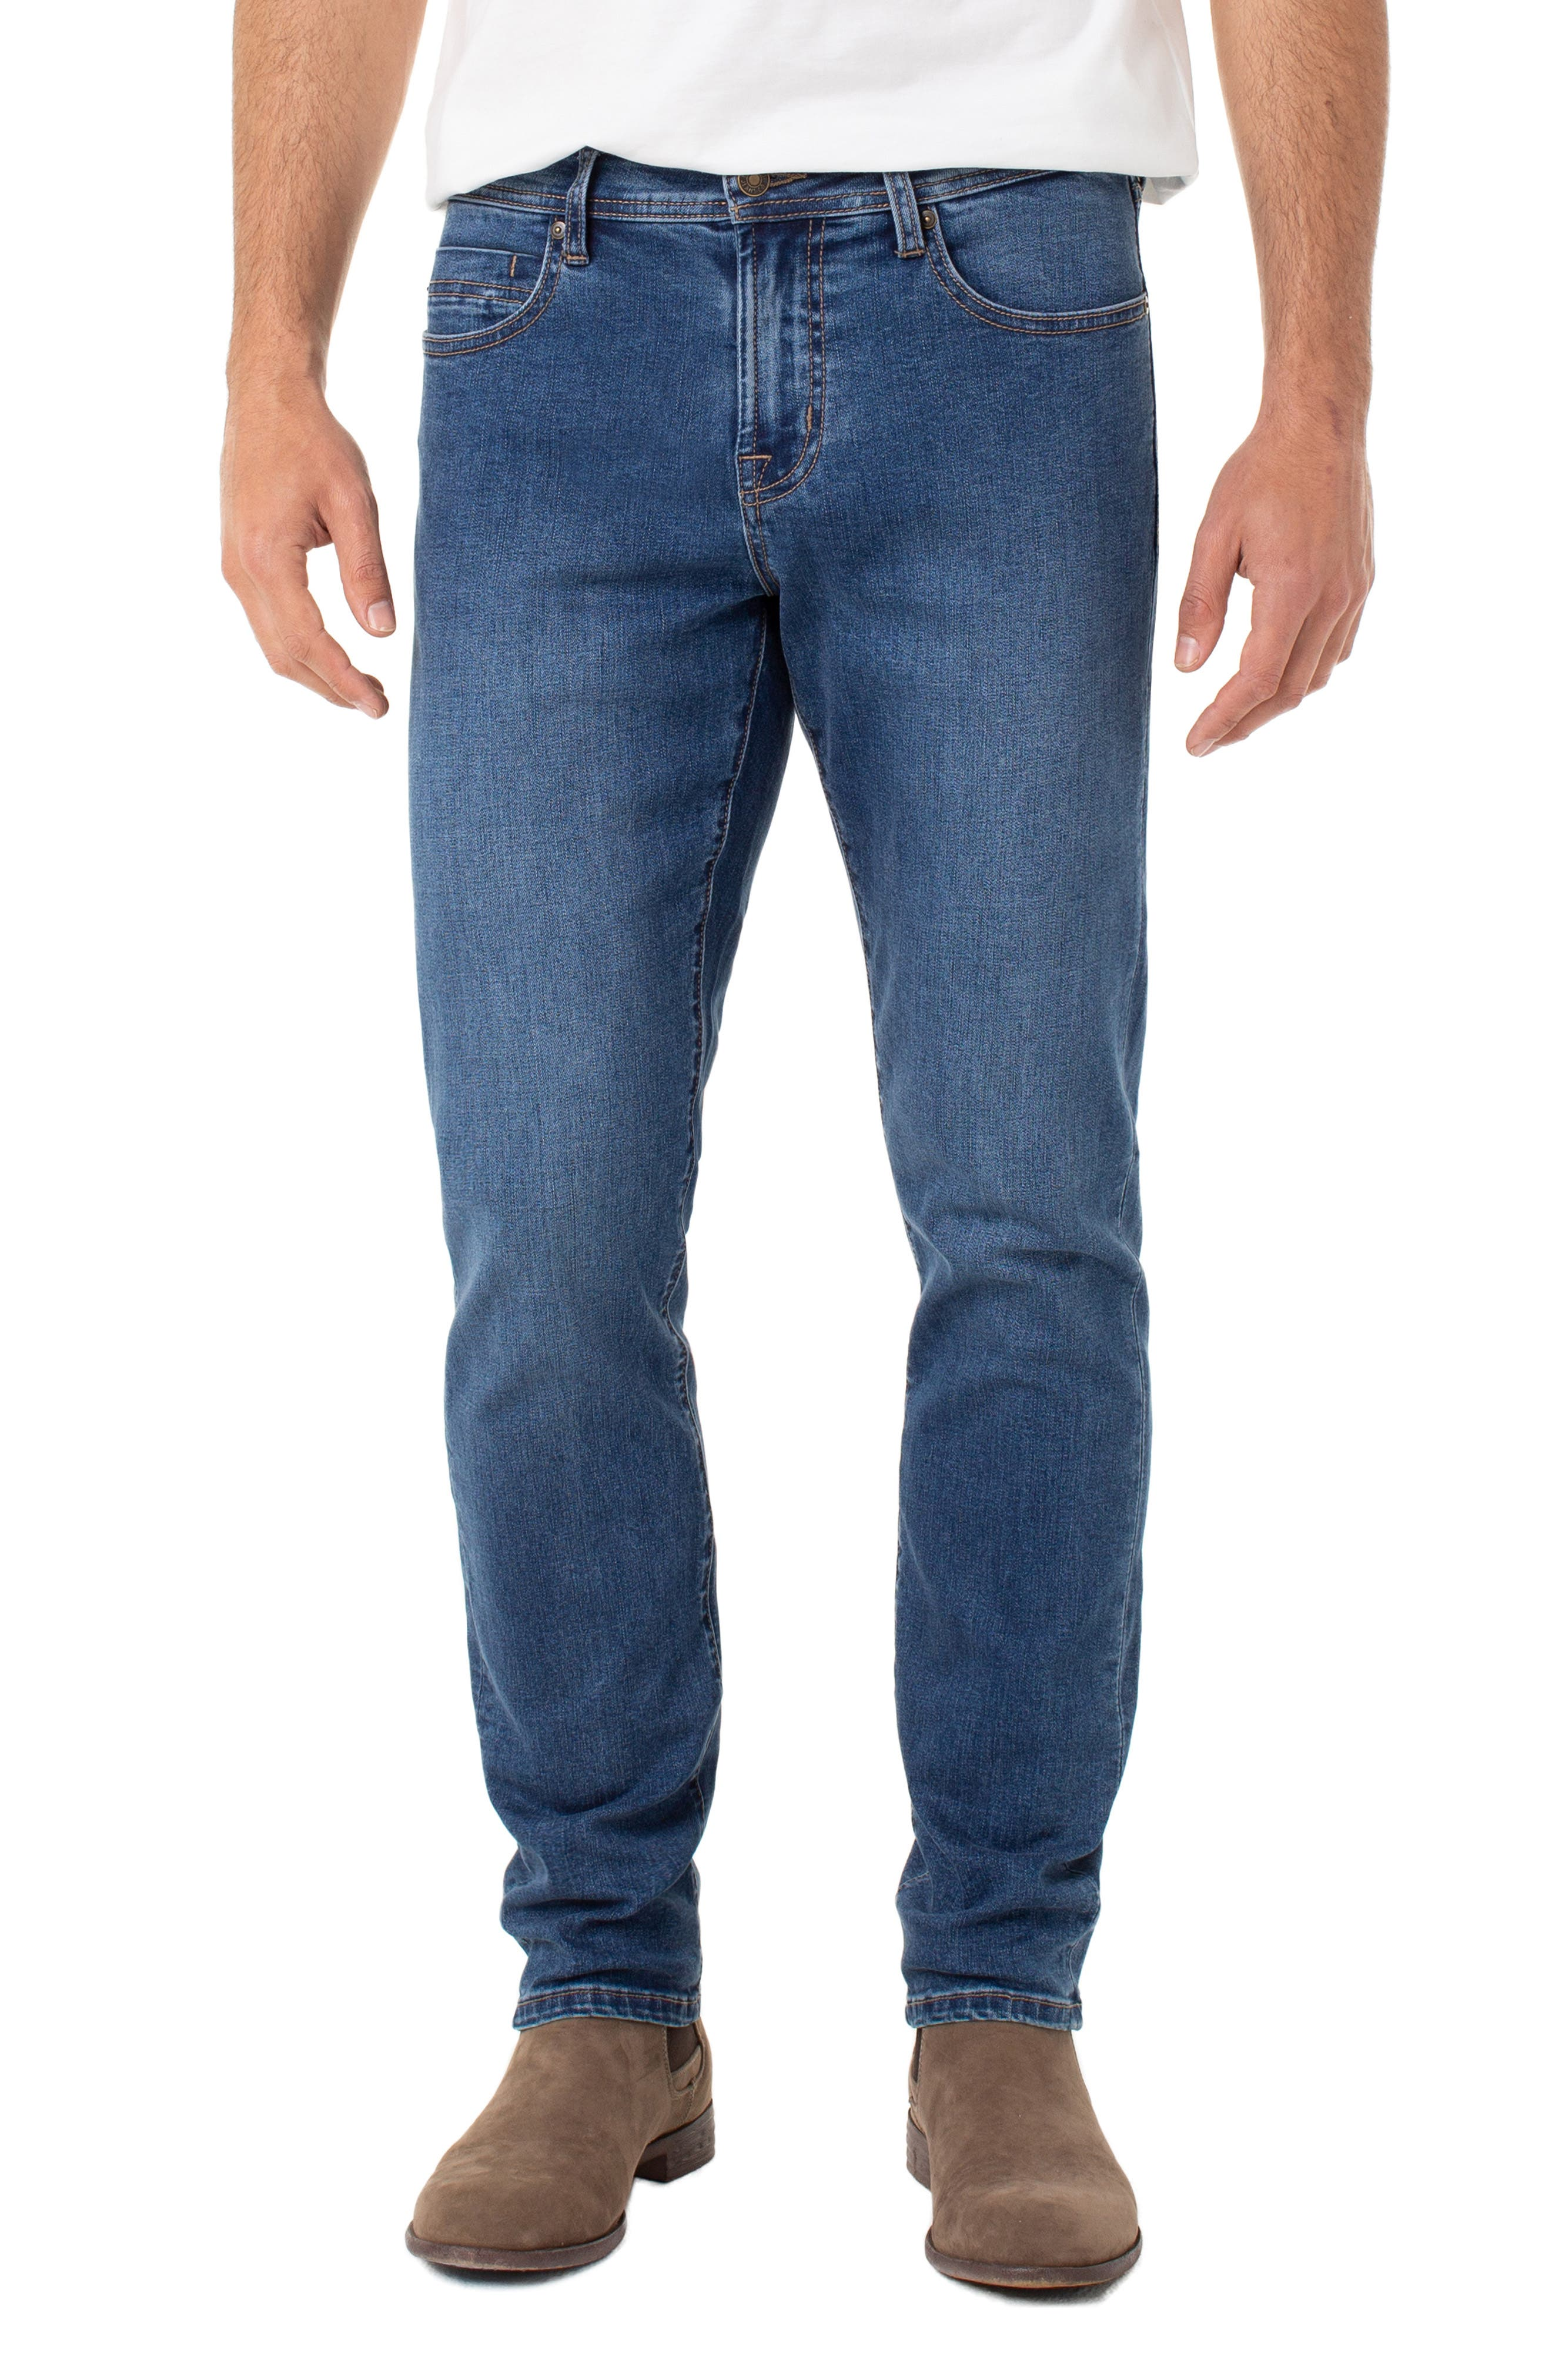 Image of Liverpool Jeans Co Kingston Modern Straight Leg Jeans